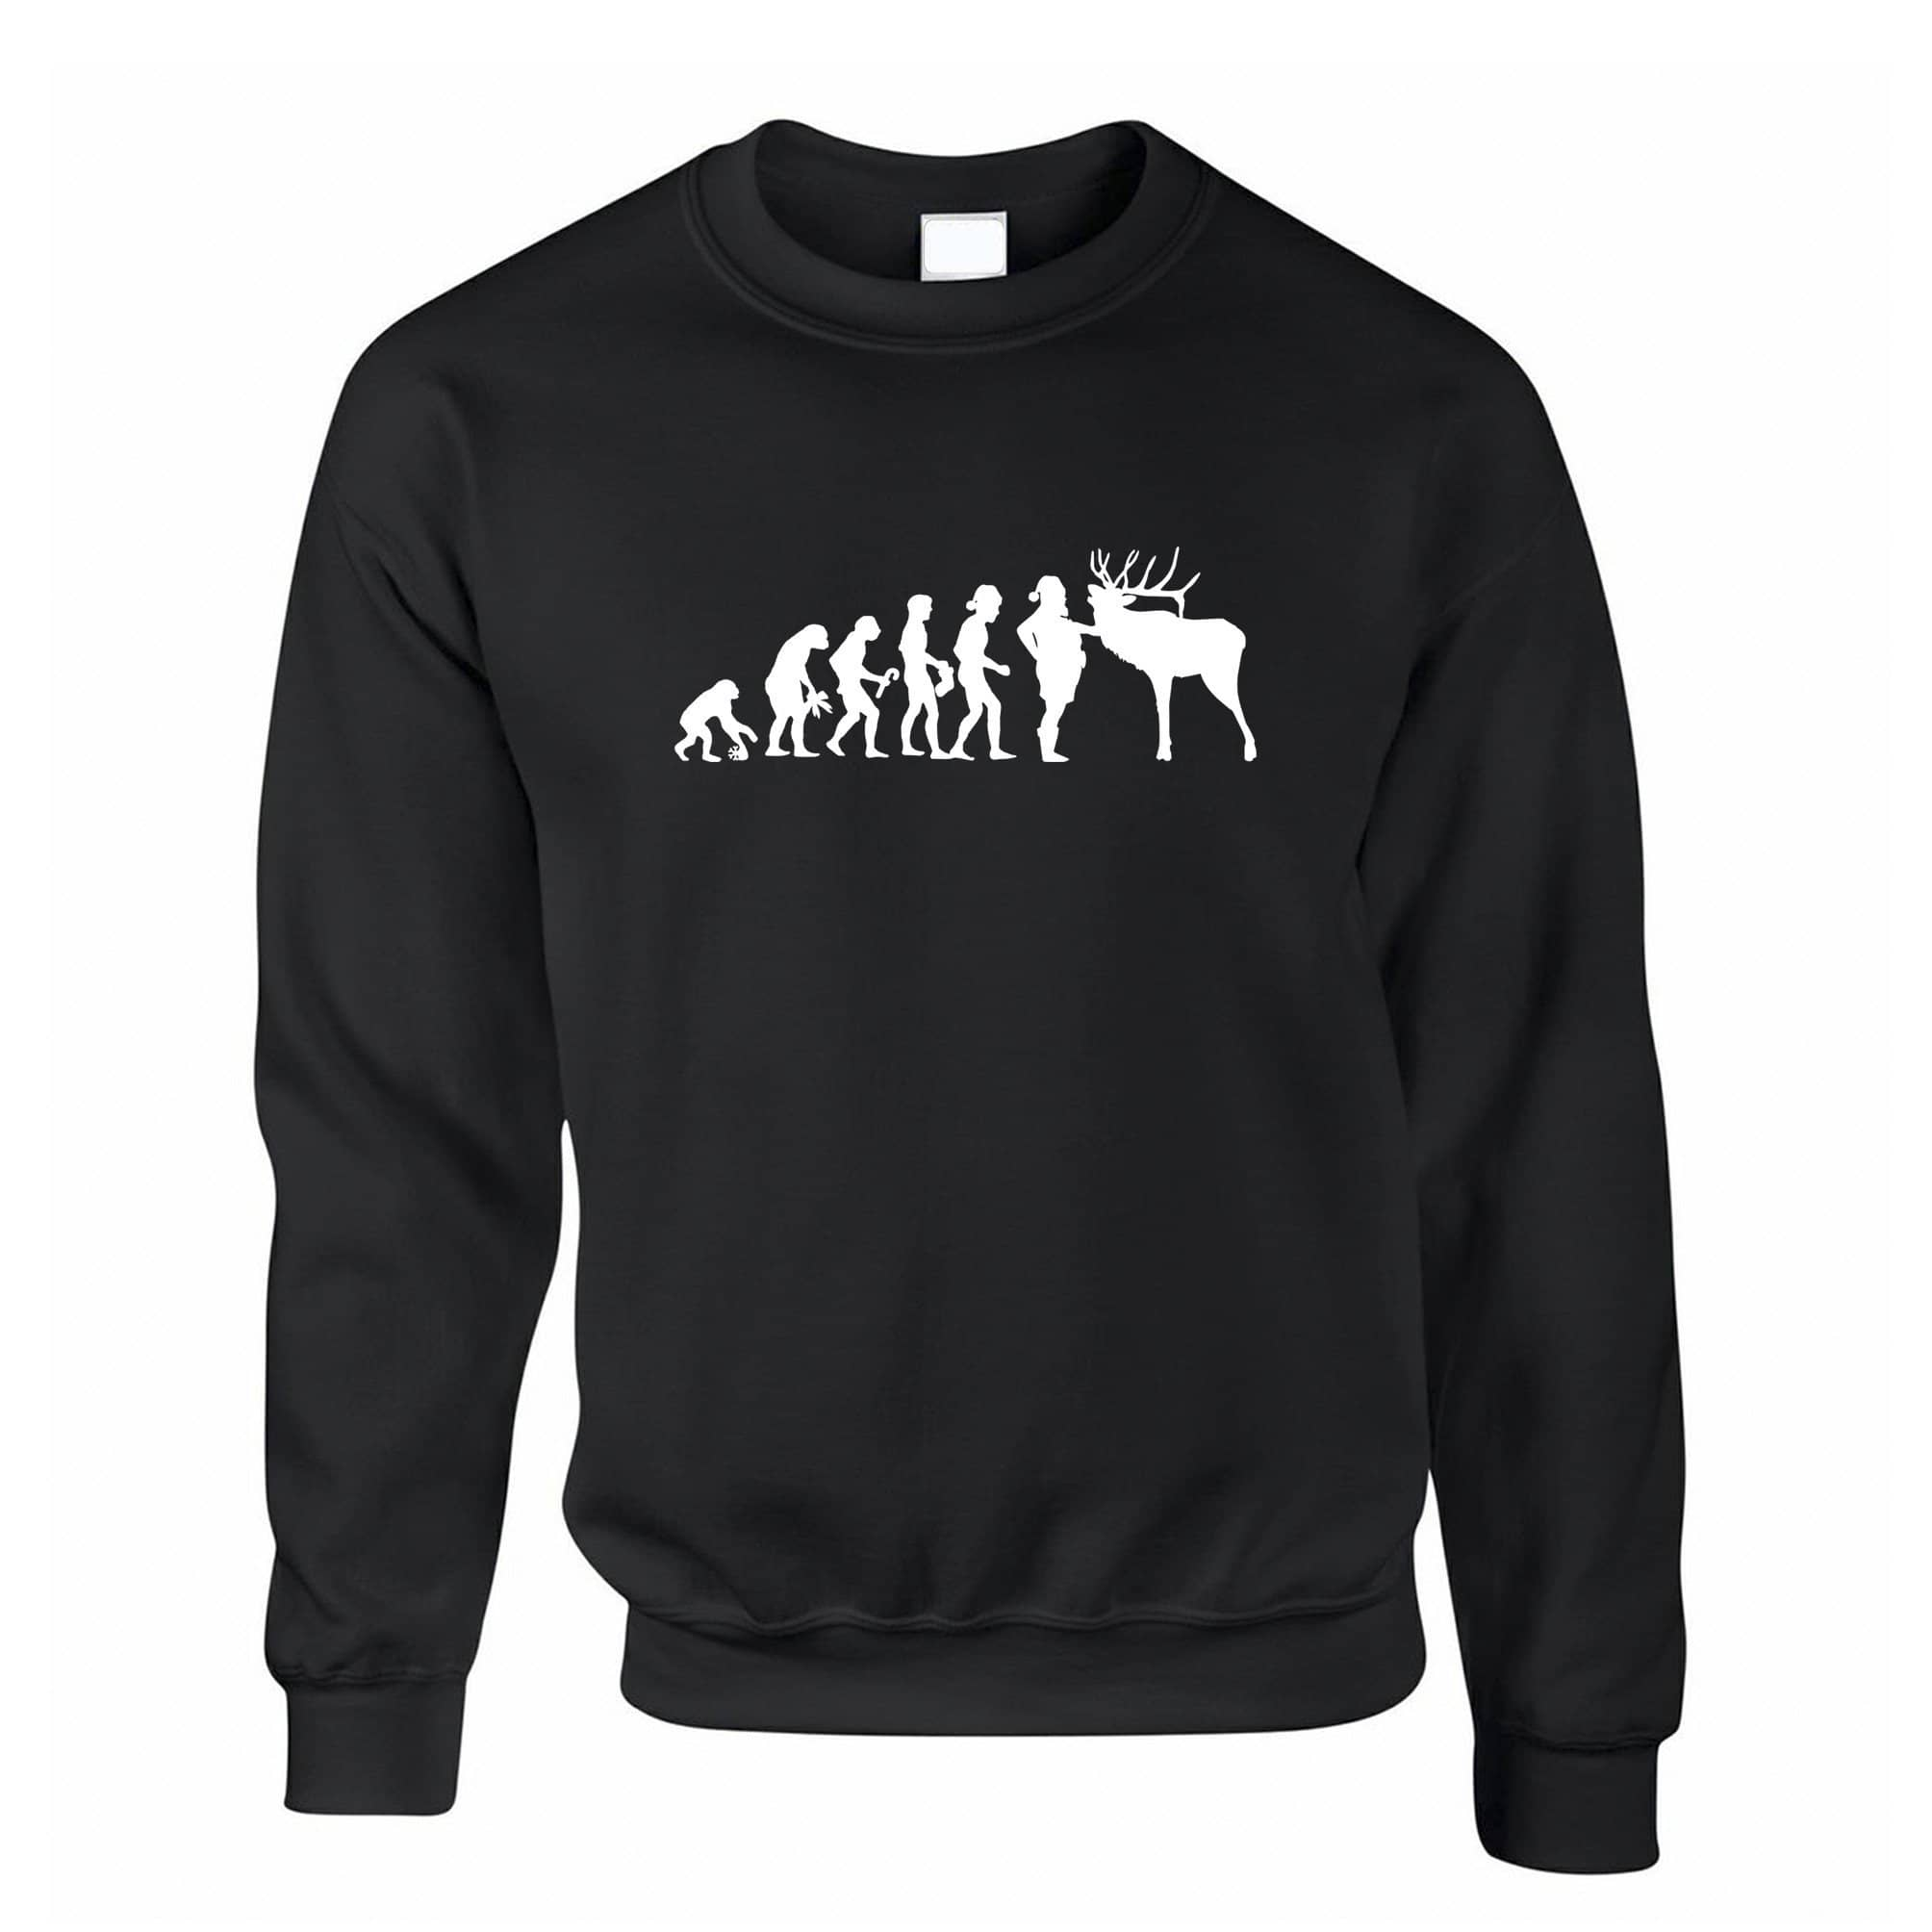 Novelty Christmas Jumper Evolution Of Xmas Holiday Sweatshirt Sweater